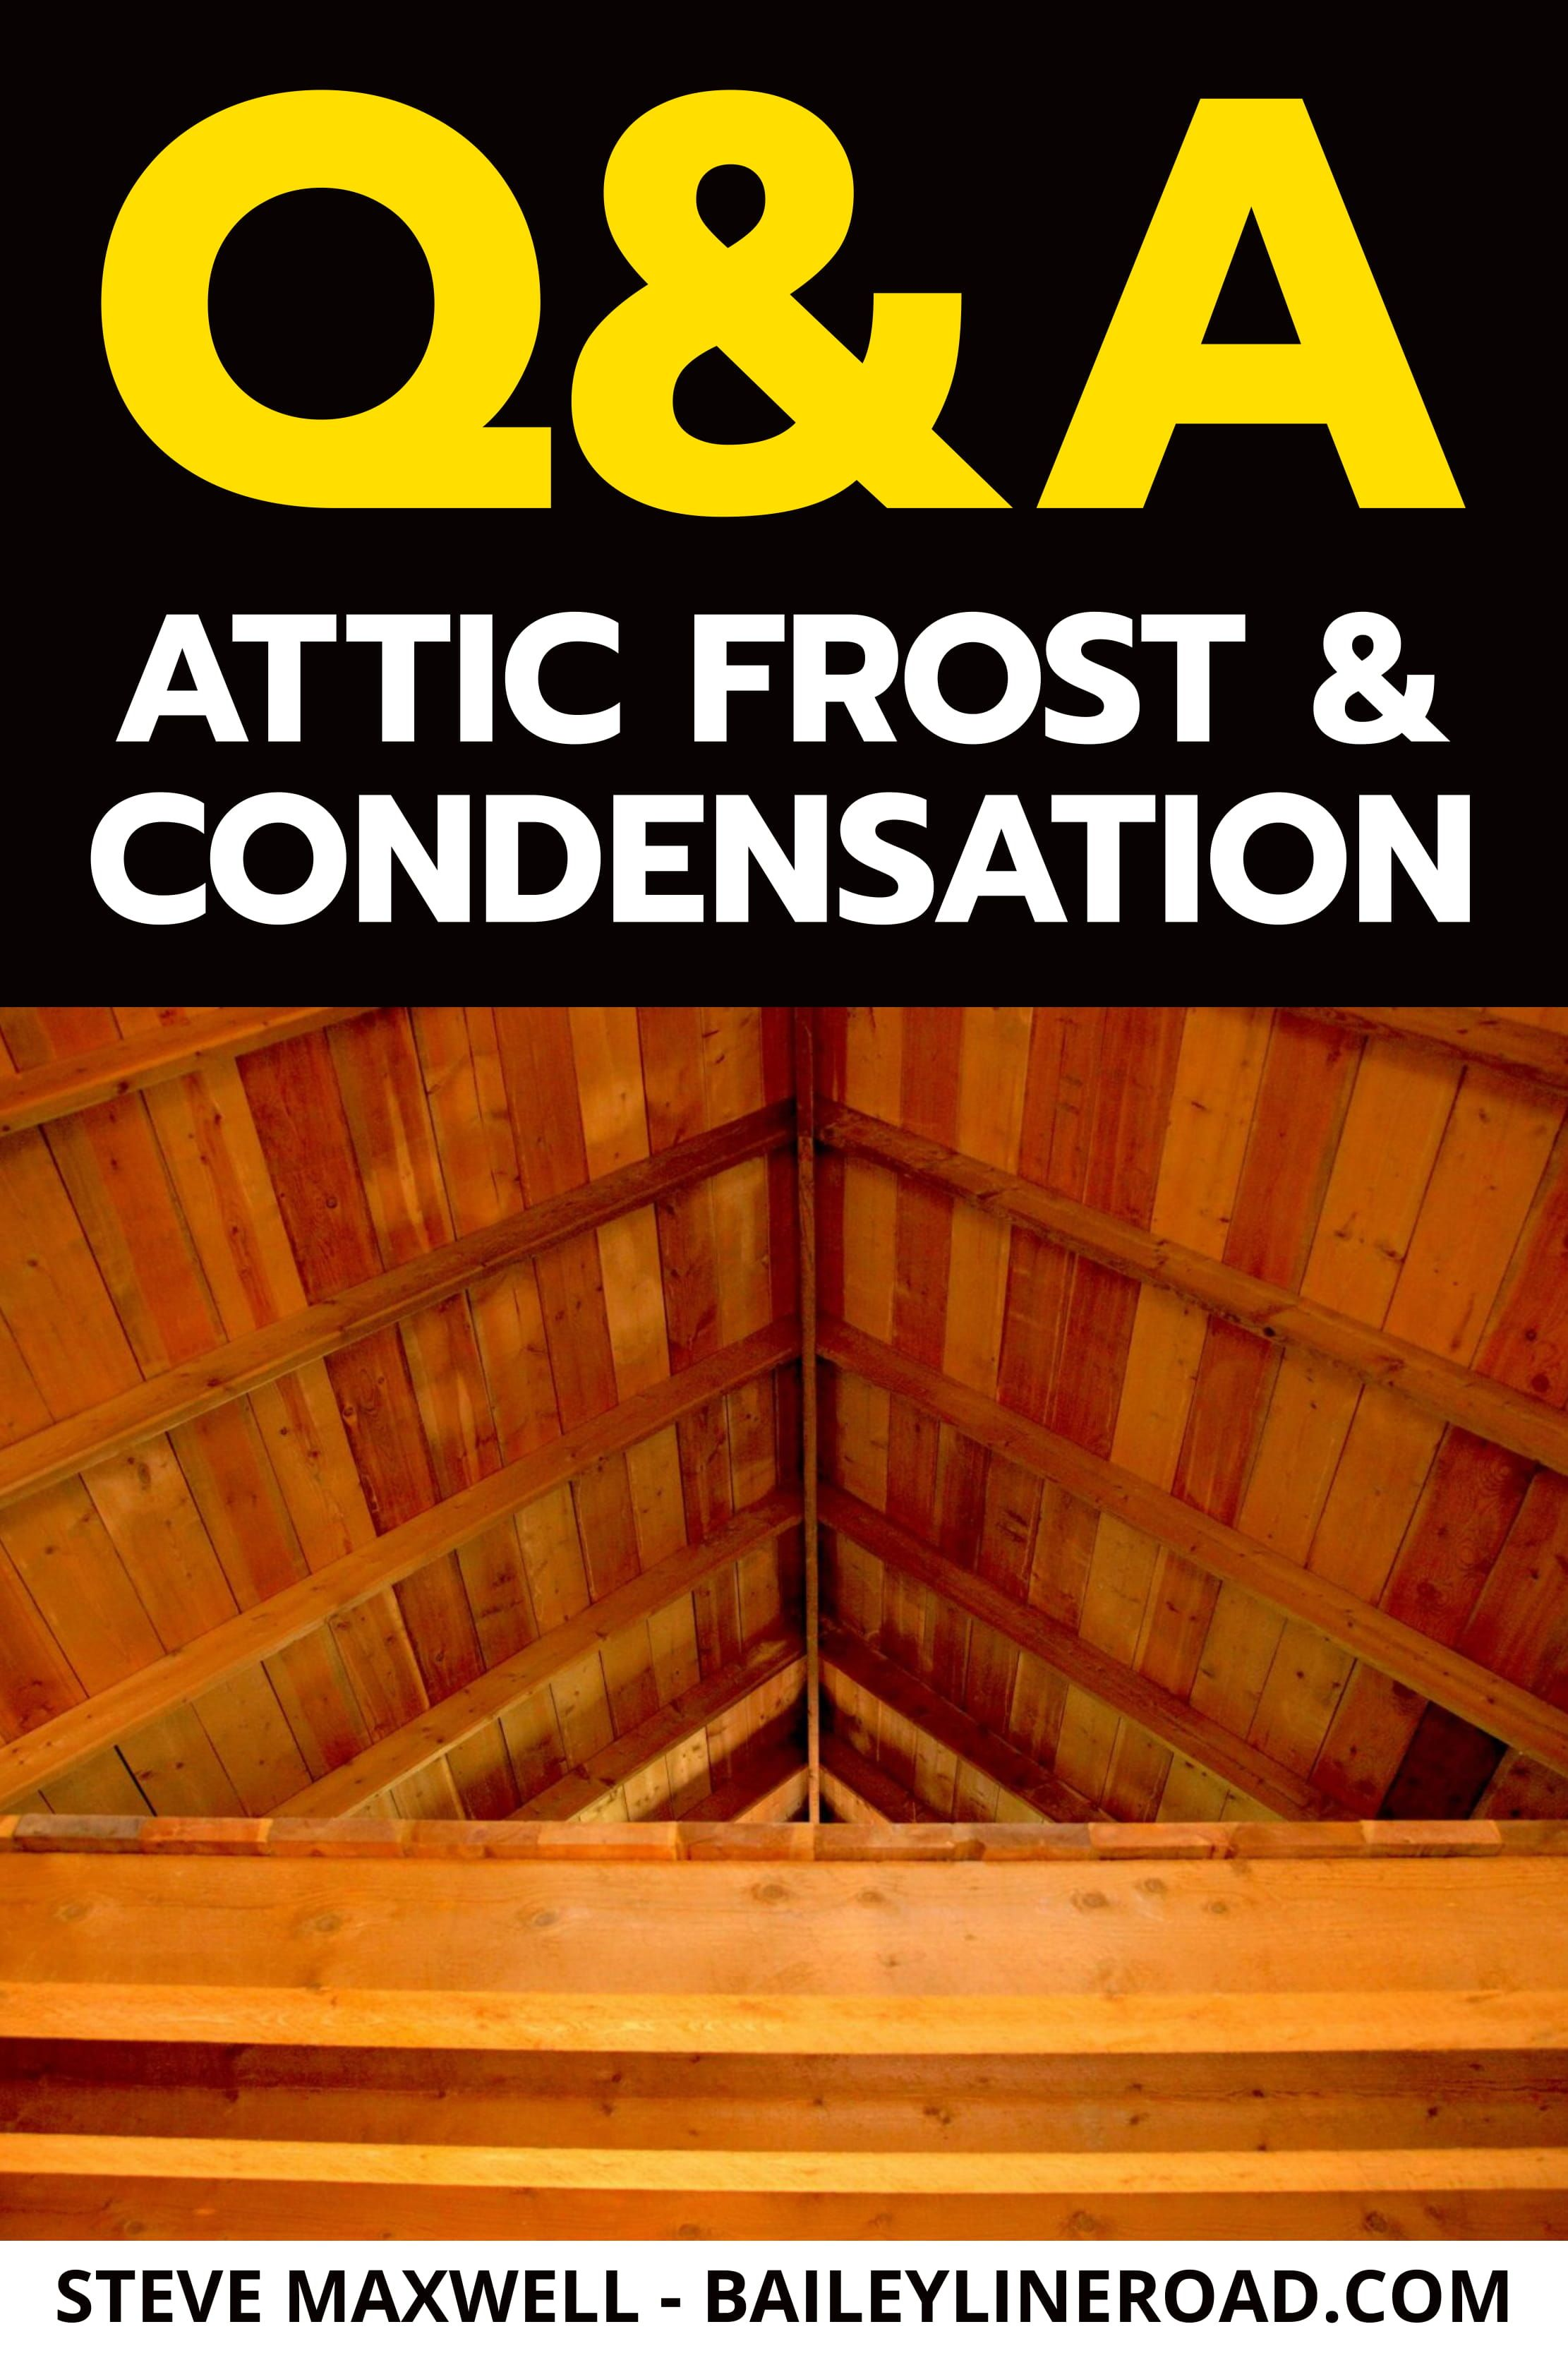 Roof Leak On A Sunny Day Melting Attic Frost May Be The Cause Baileylineroad In 2020 Attic This Or That Questions Leaking Roof